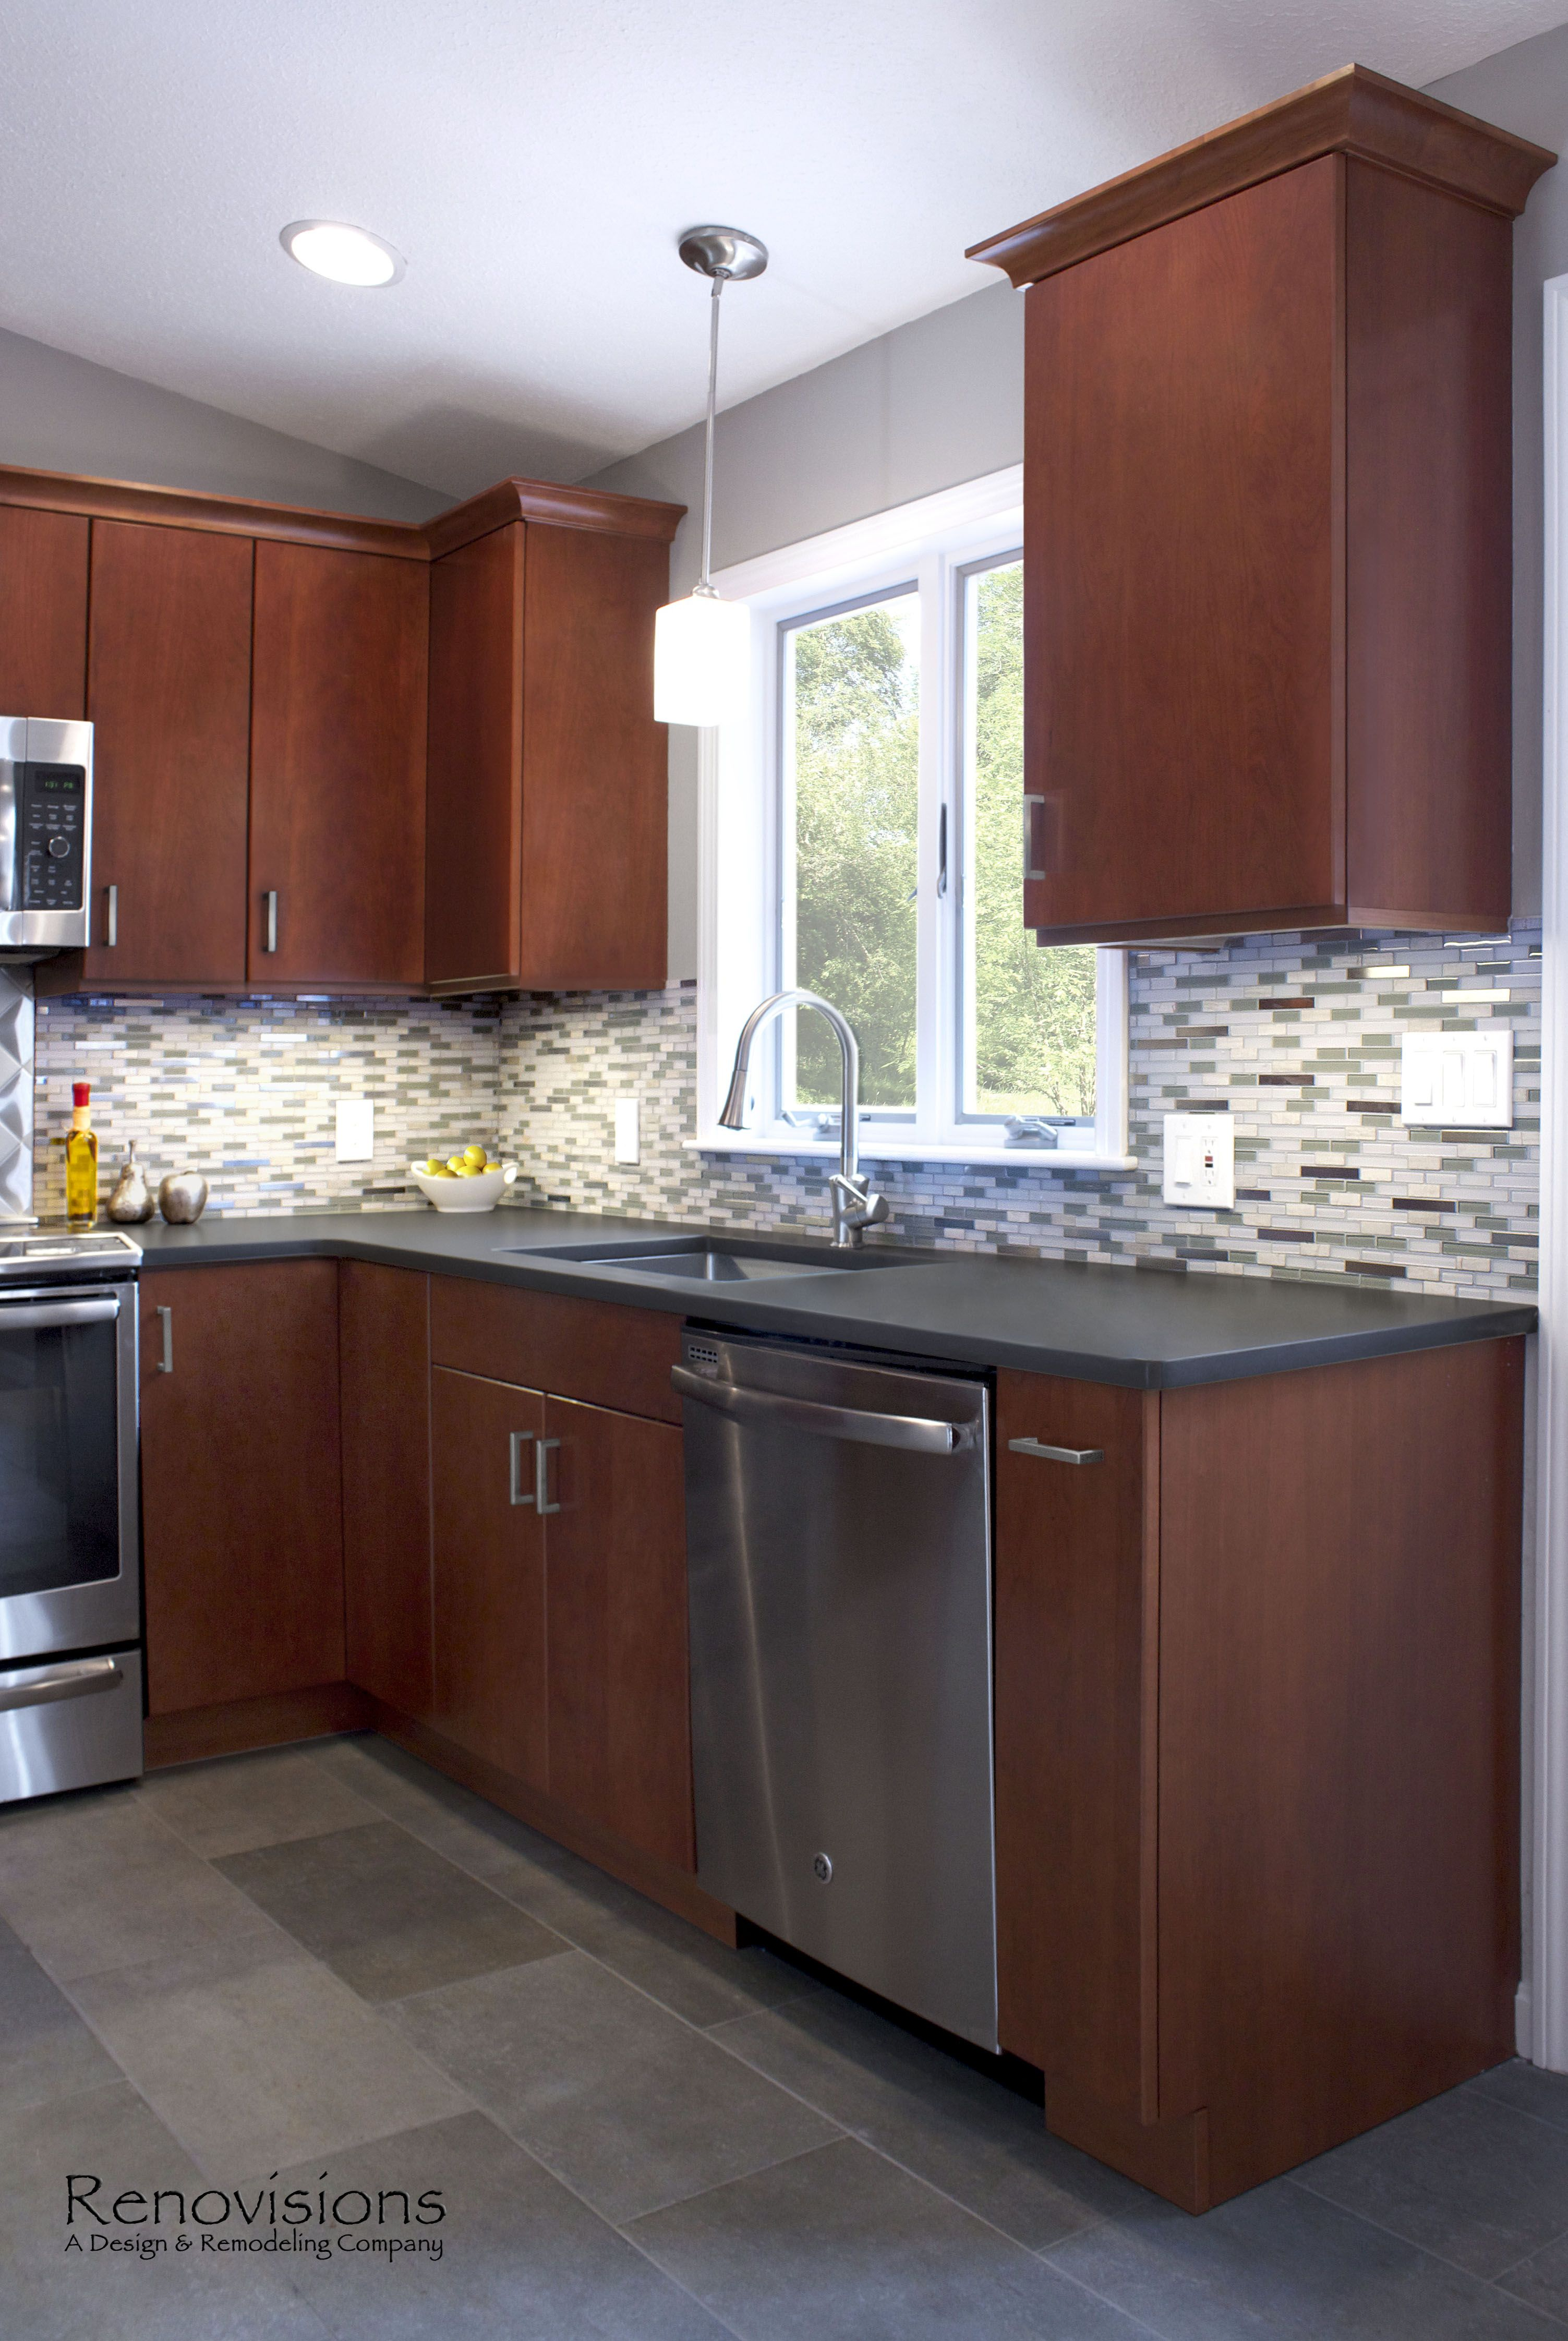 Contemporary Kitchen Remodel By Renovisions Stainless Steel Appliances Glass Mosaic B Contemporary Kitchen Remodel Cherry Cabinets Kitchen Grey Kitchen Floor